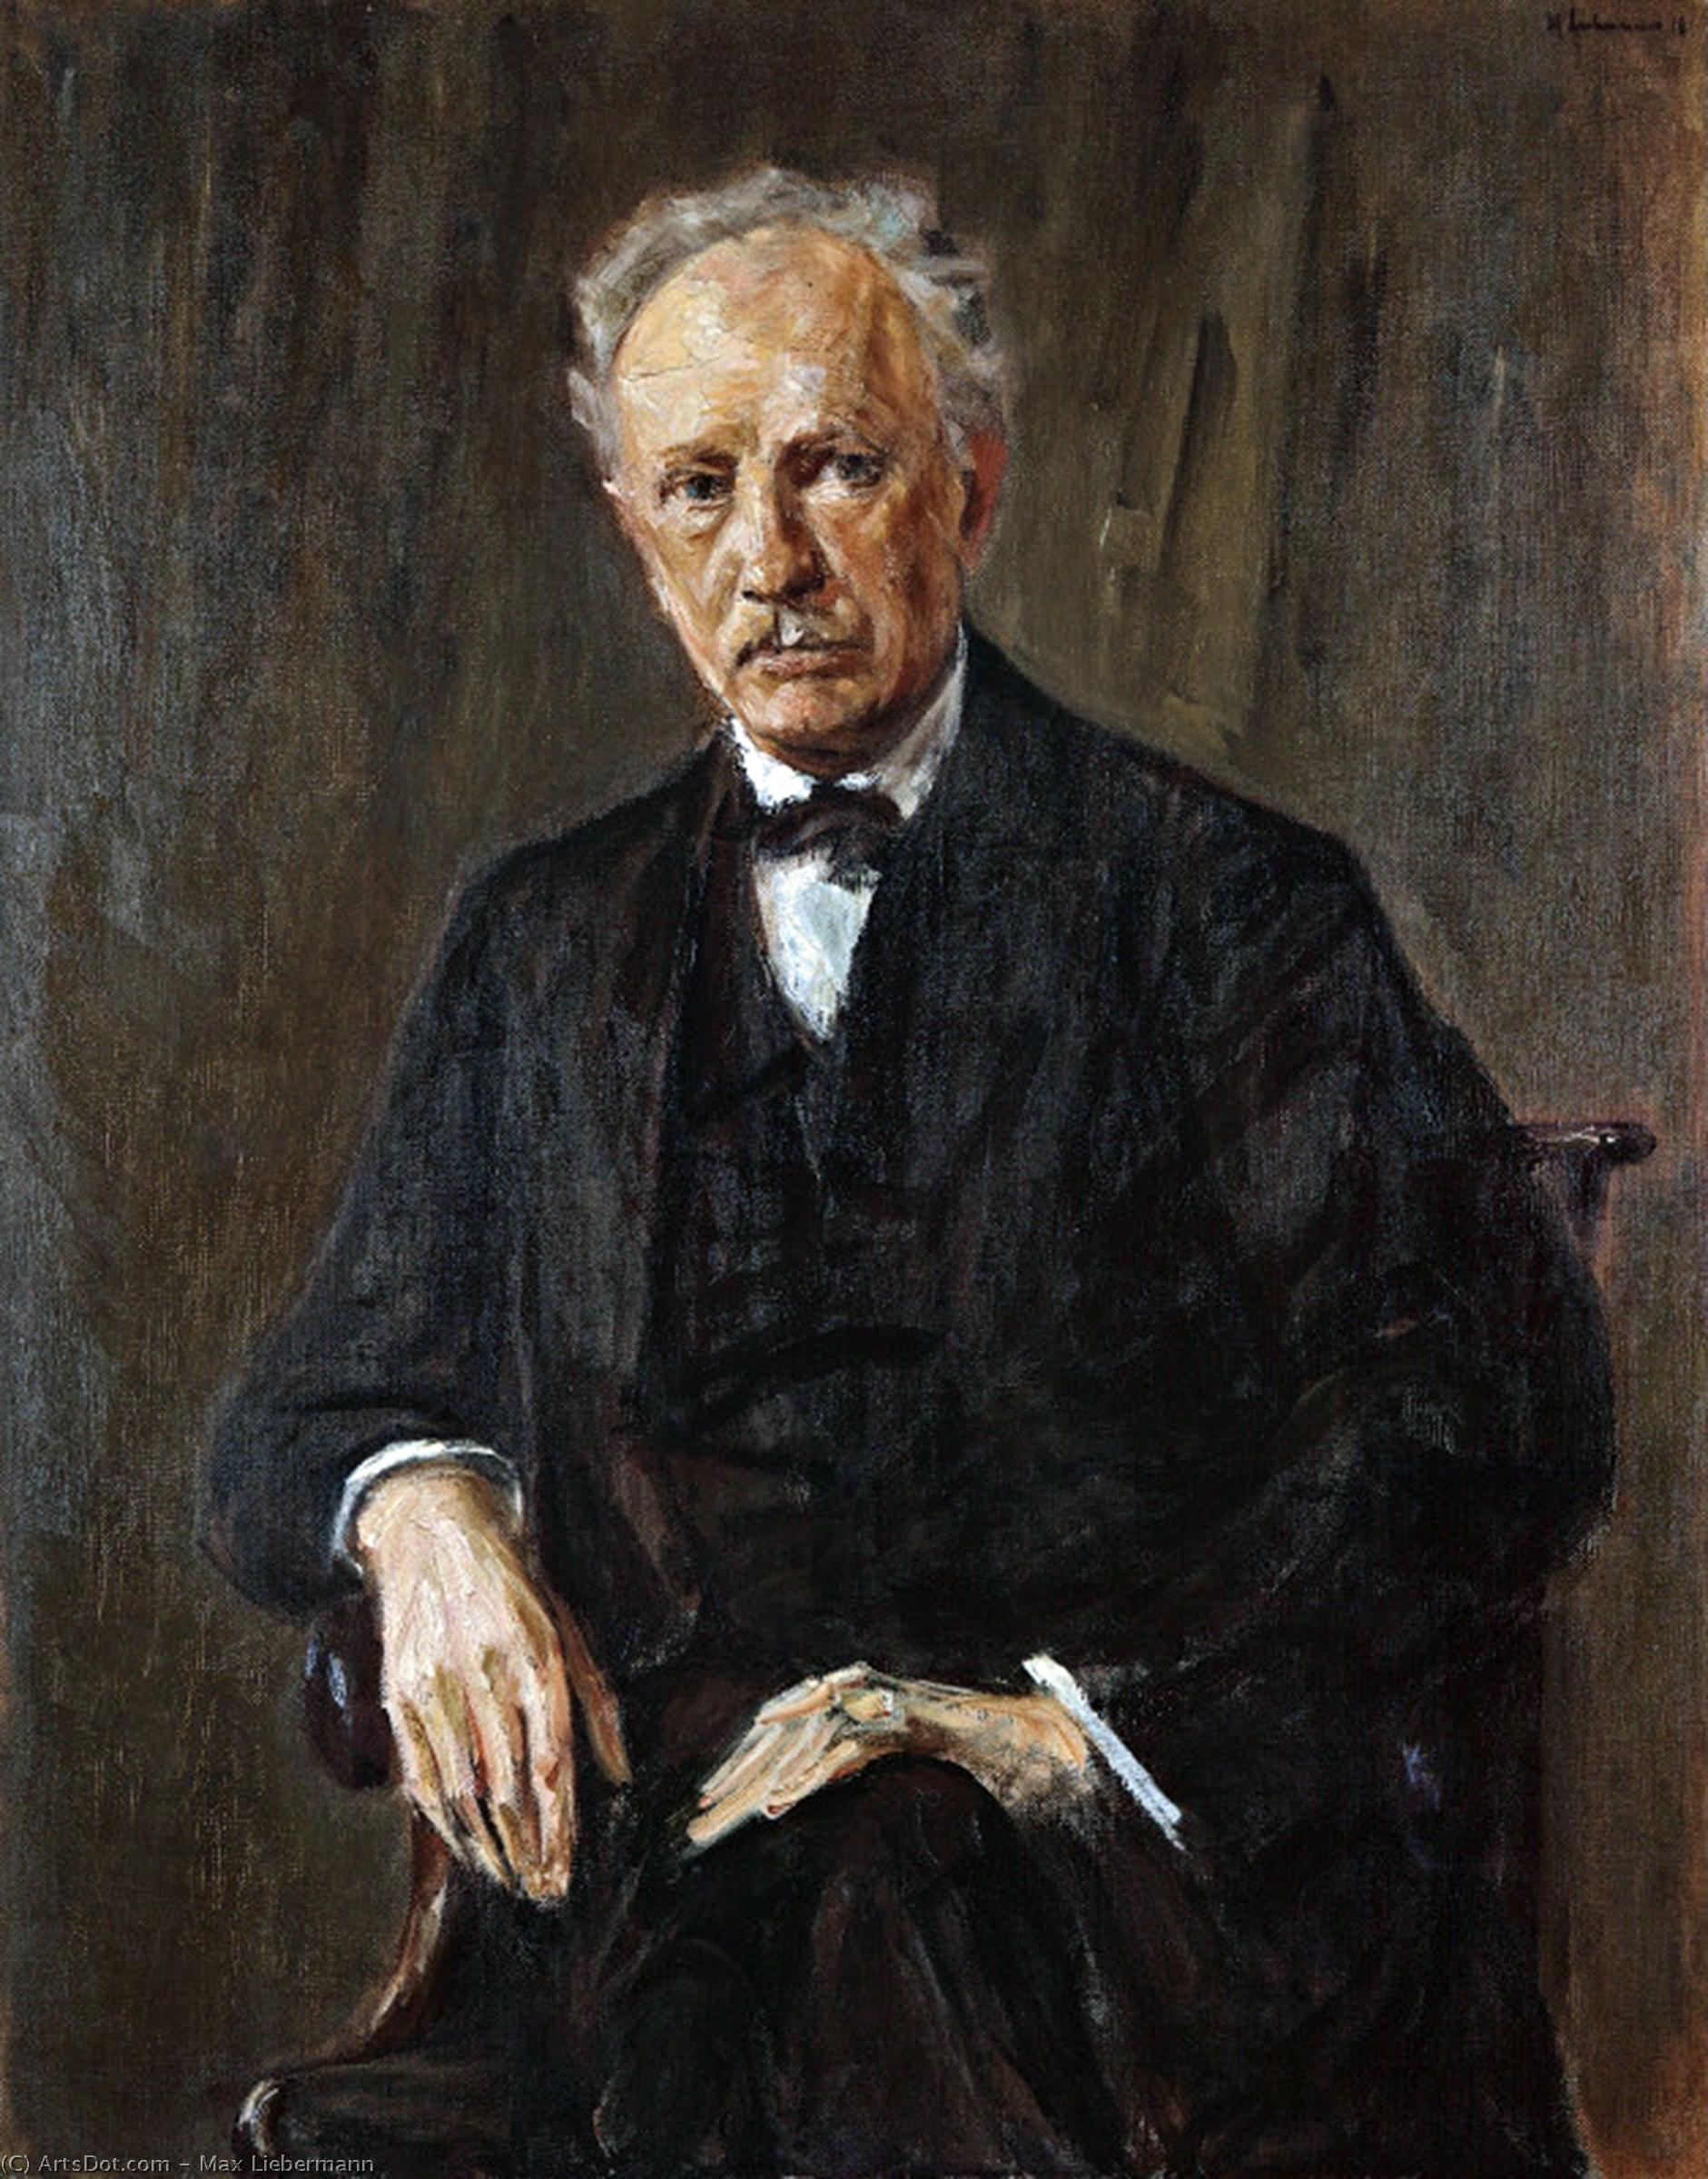 Wikioo.org - The Encyclopedia of Fine Arts - Painting, Artwork by Max Liebermann - Portrait of Richard Strauss